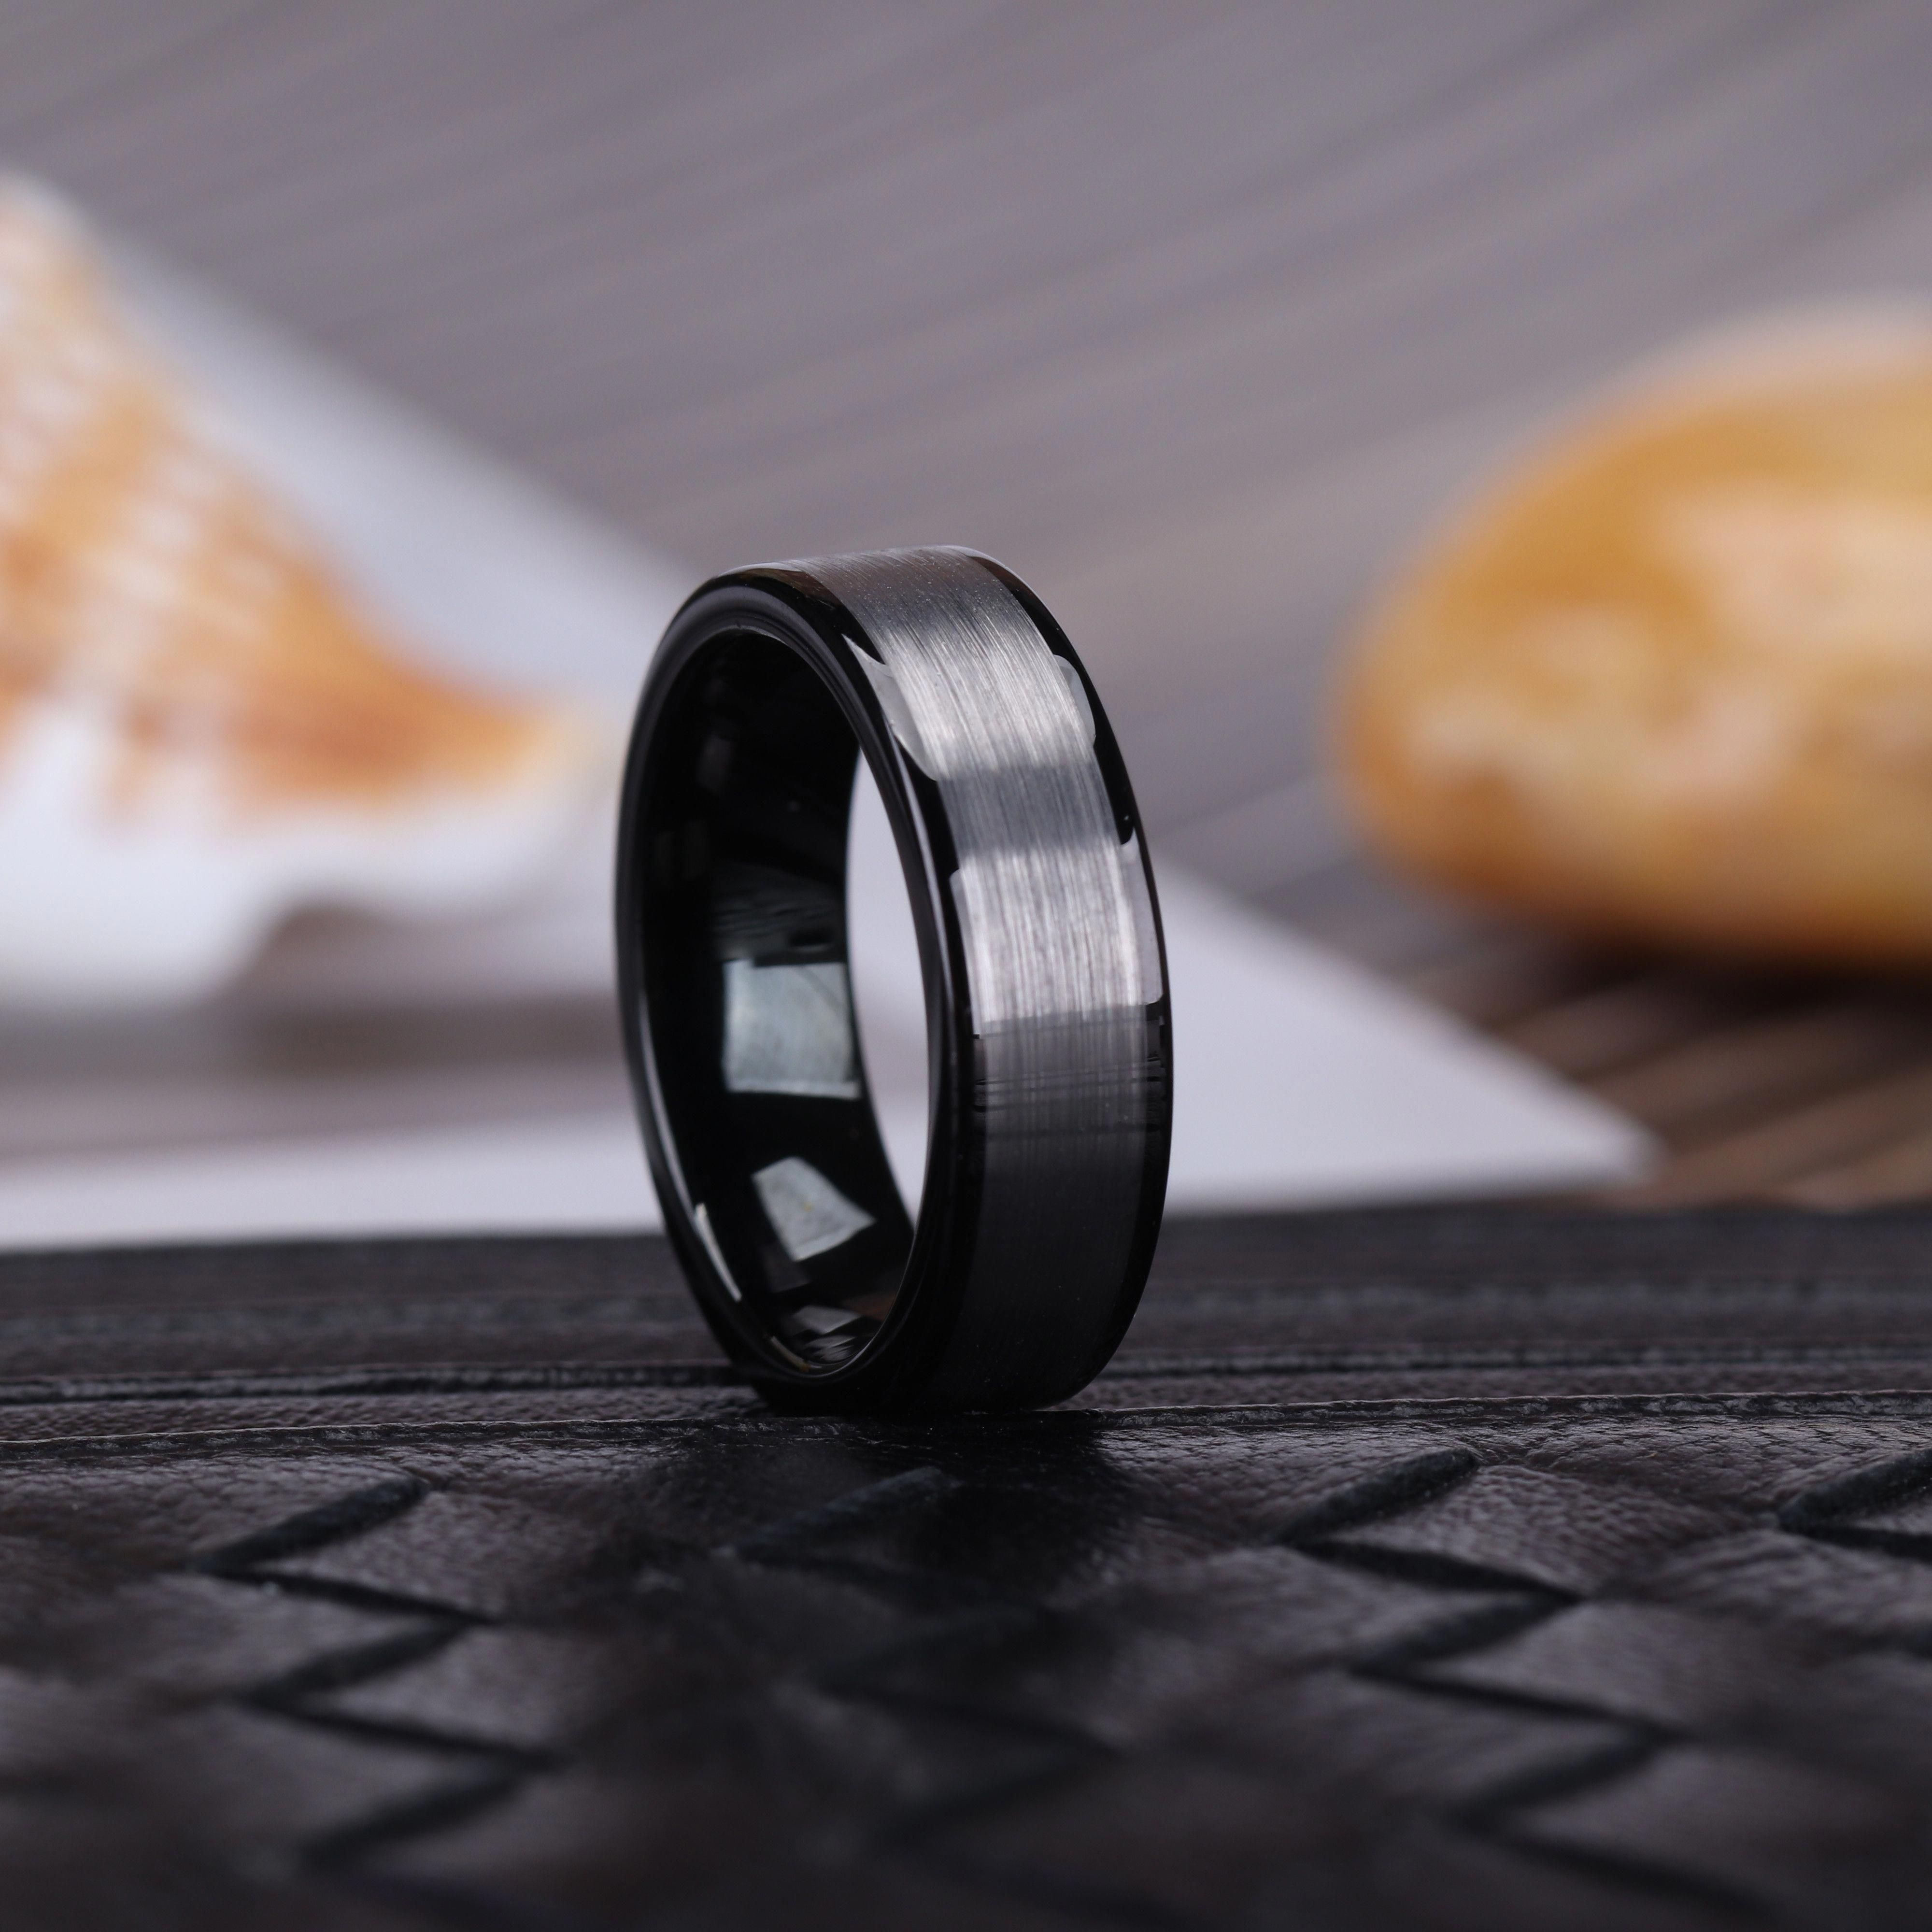 unique wedding rings on sale right now...